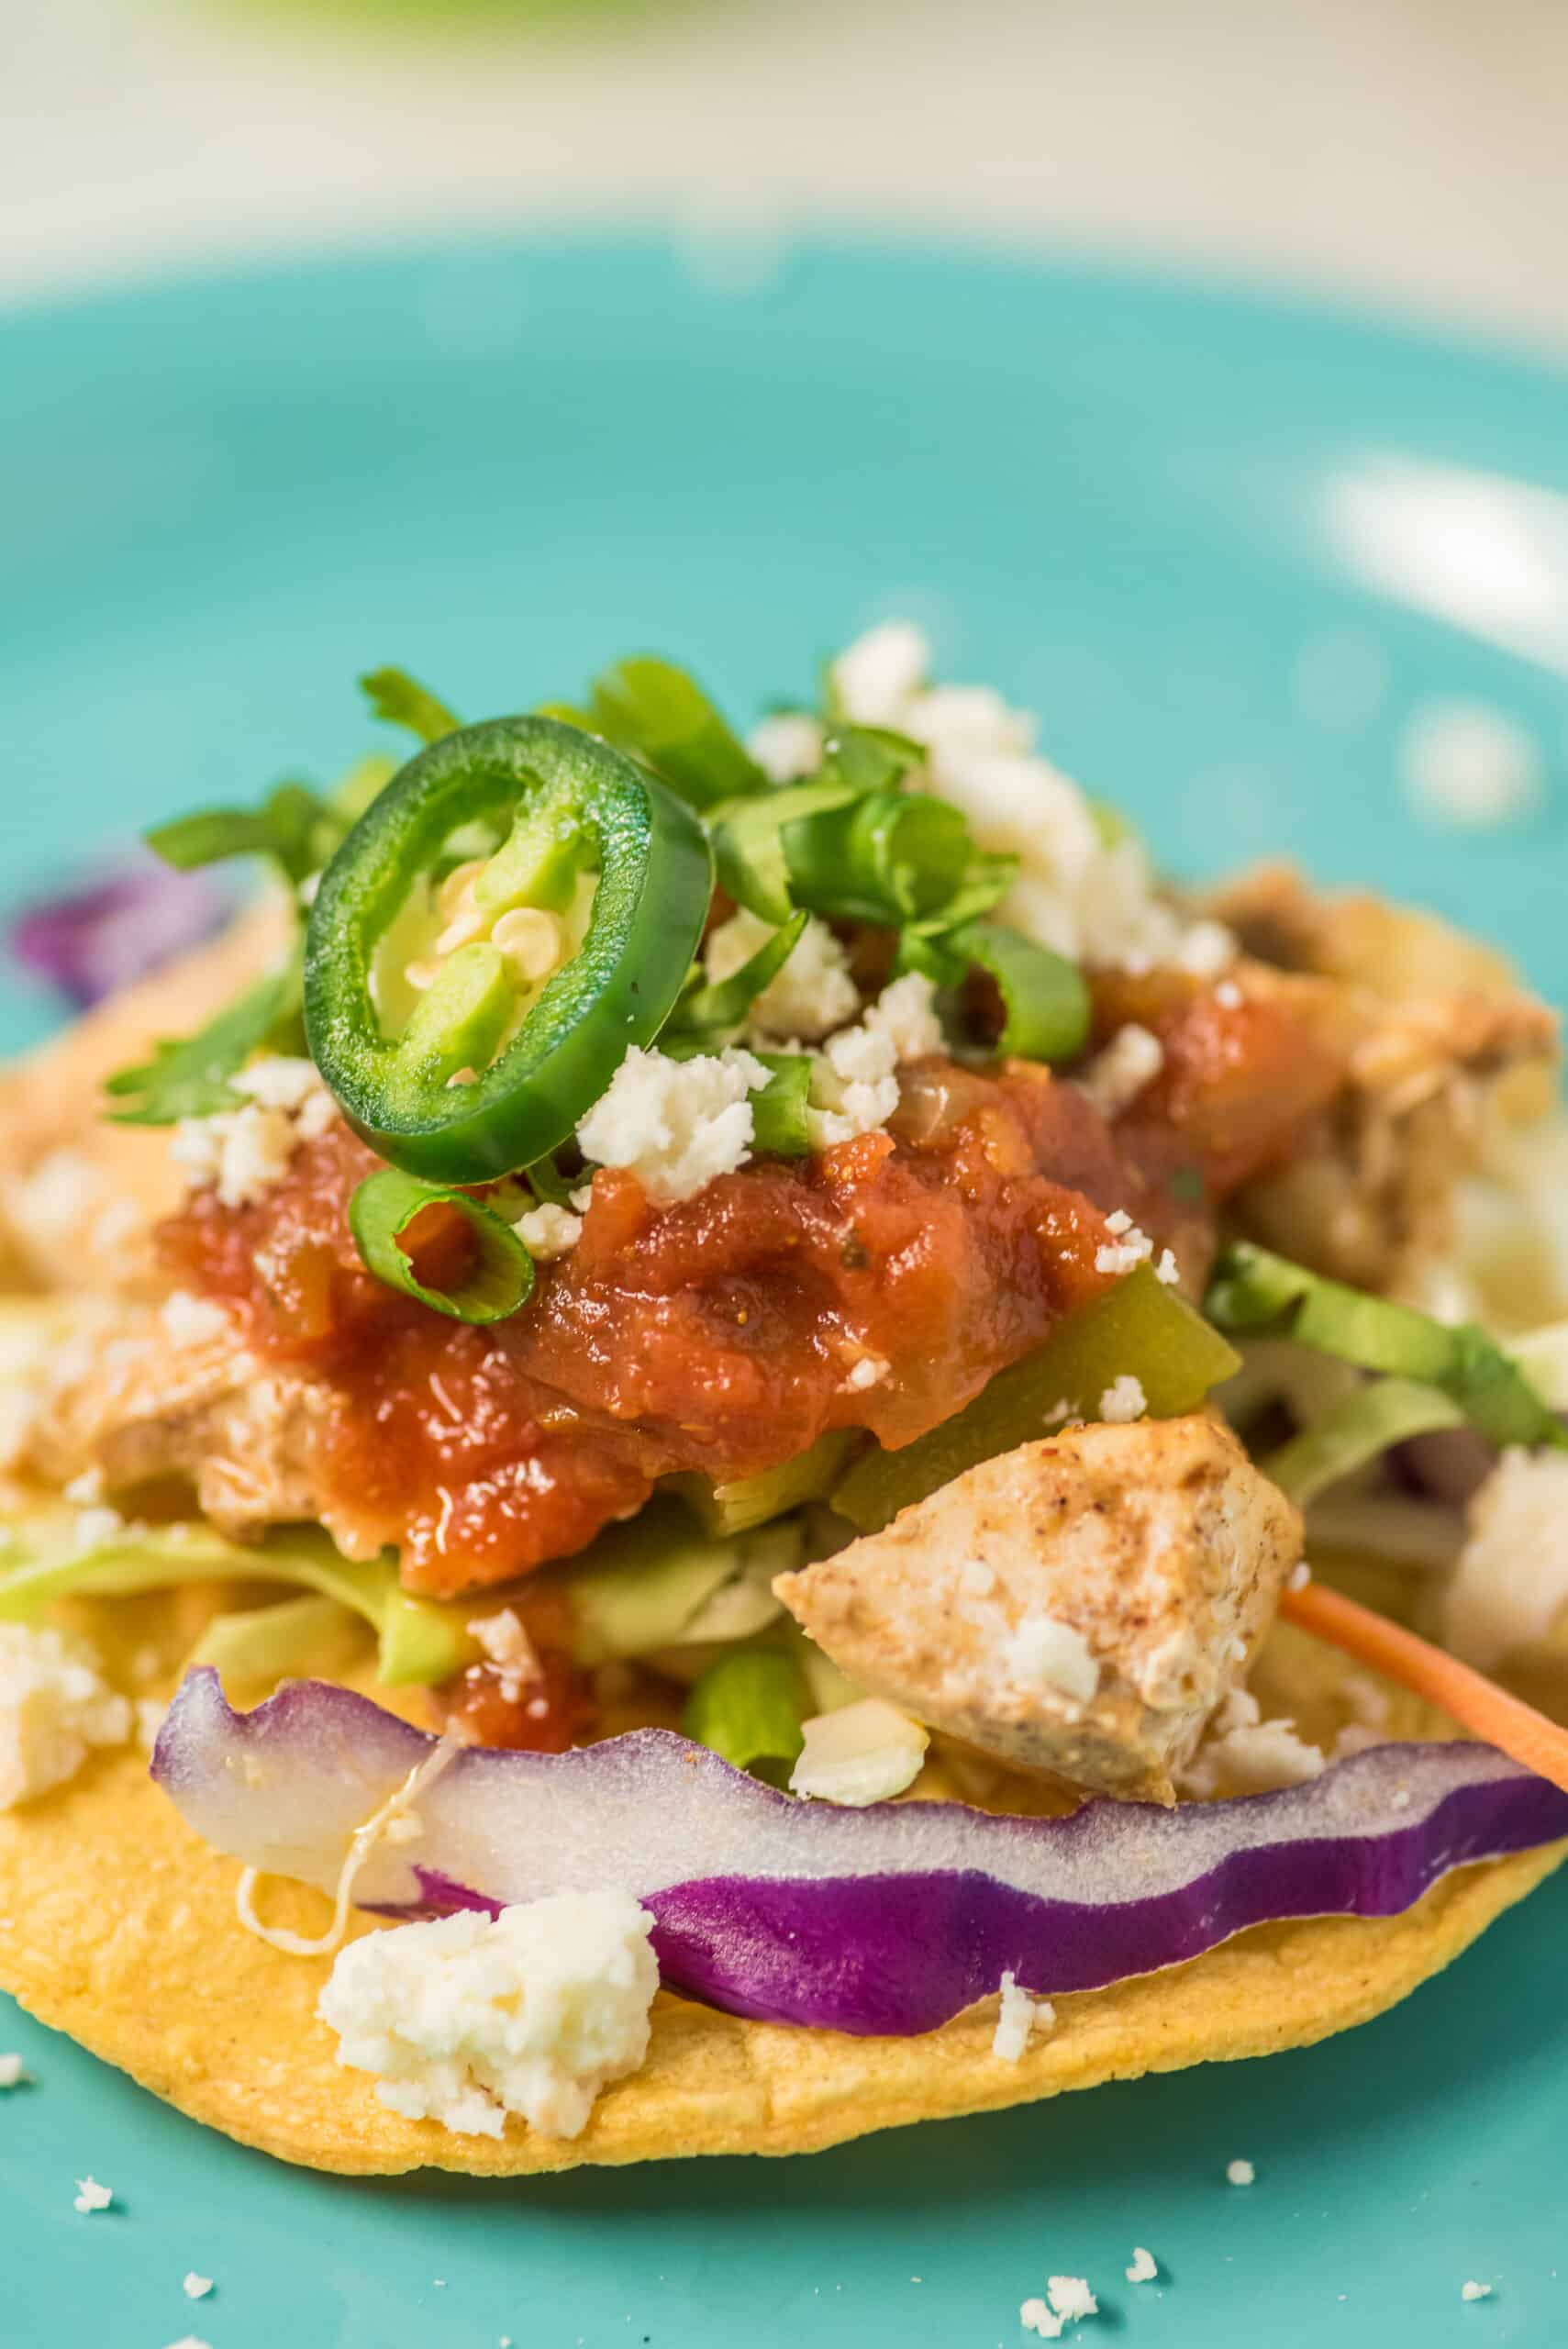 Tostada with chicken, salsa, cheese, jalapeno, and lettuce.